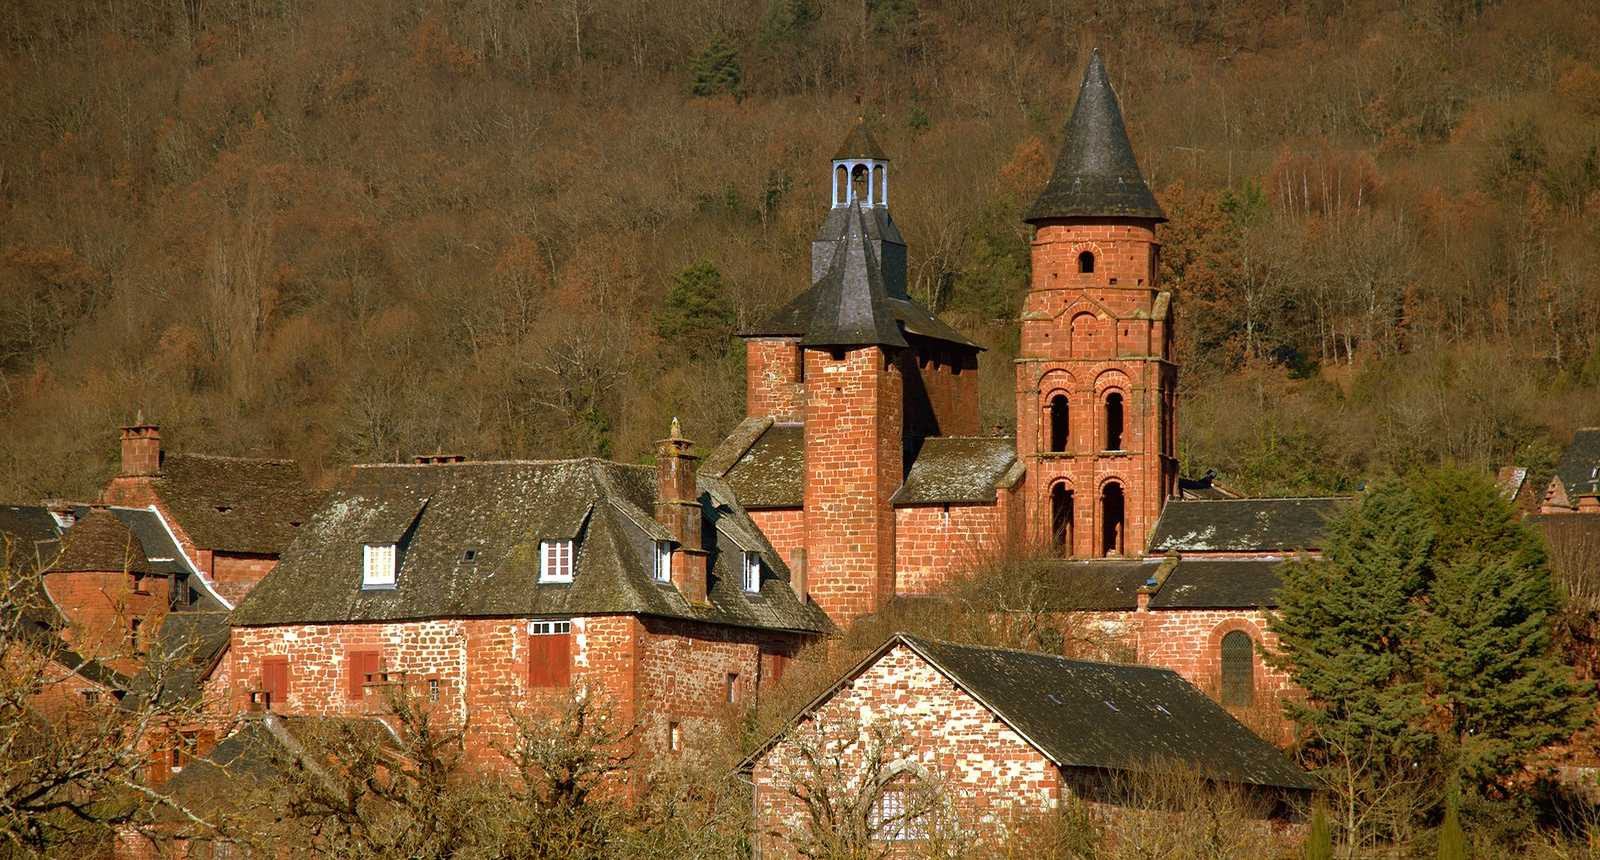 L'église Saint-Pierre de Collonges-la-Rouge